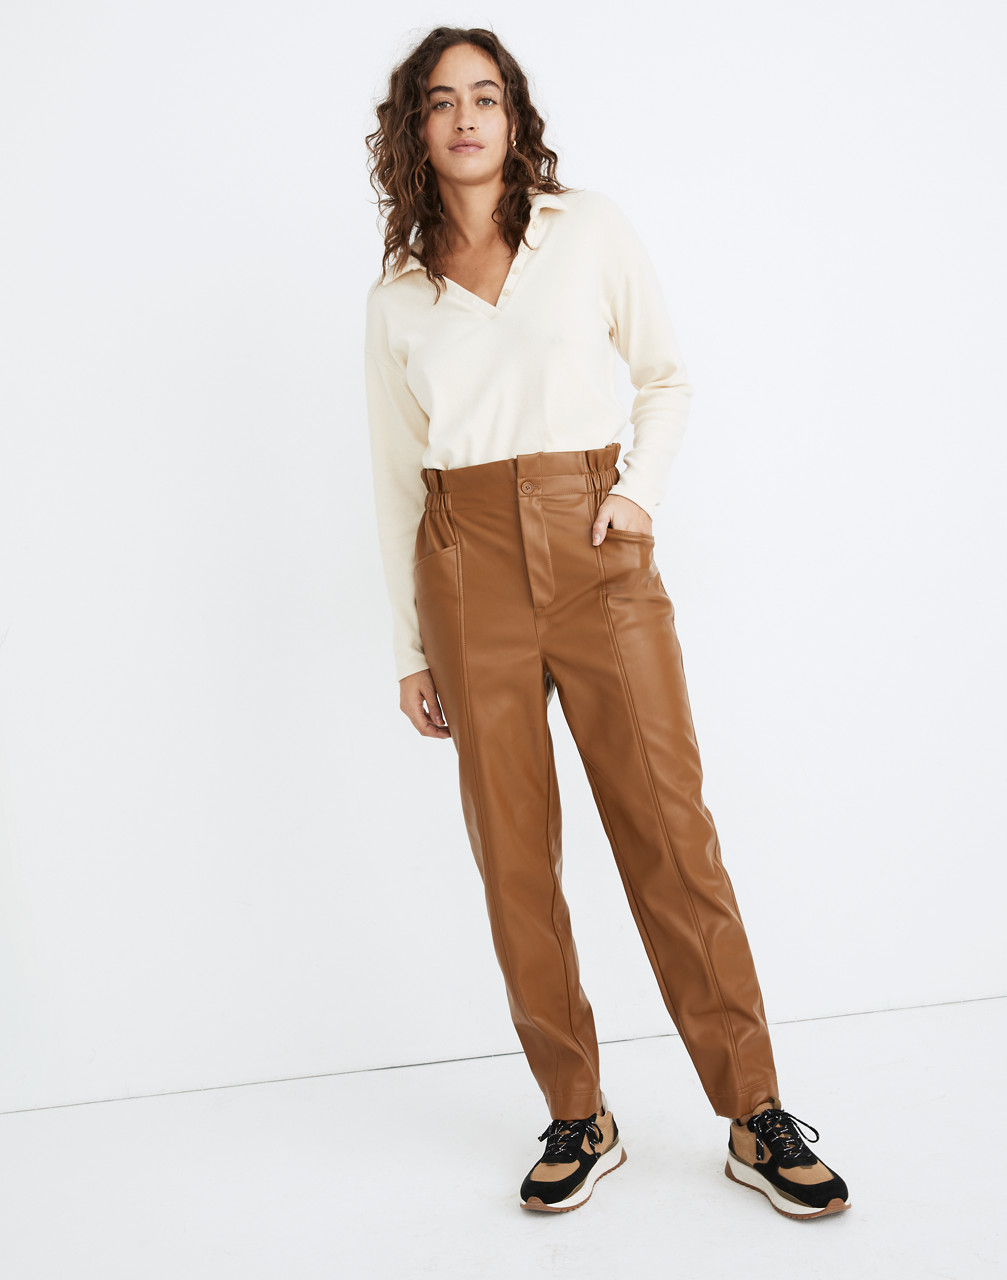 1980s Clothing, Fashion | 80s Style Clothes Vegan Leather Pull-On Paperbag Pants $138.00 AT vintagedancer.com